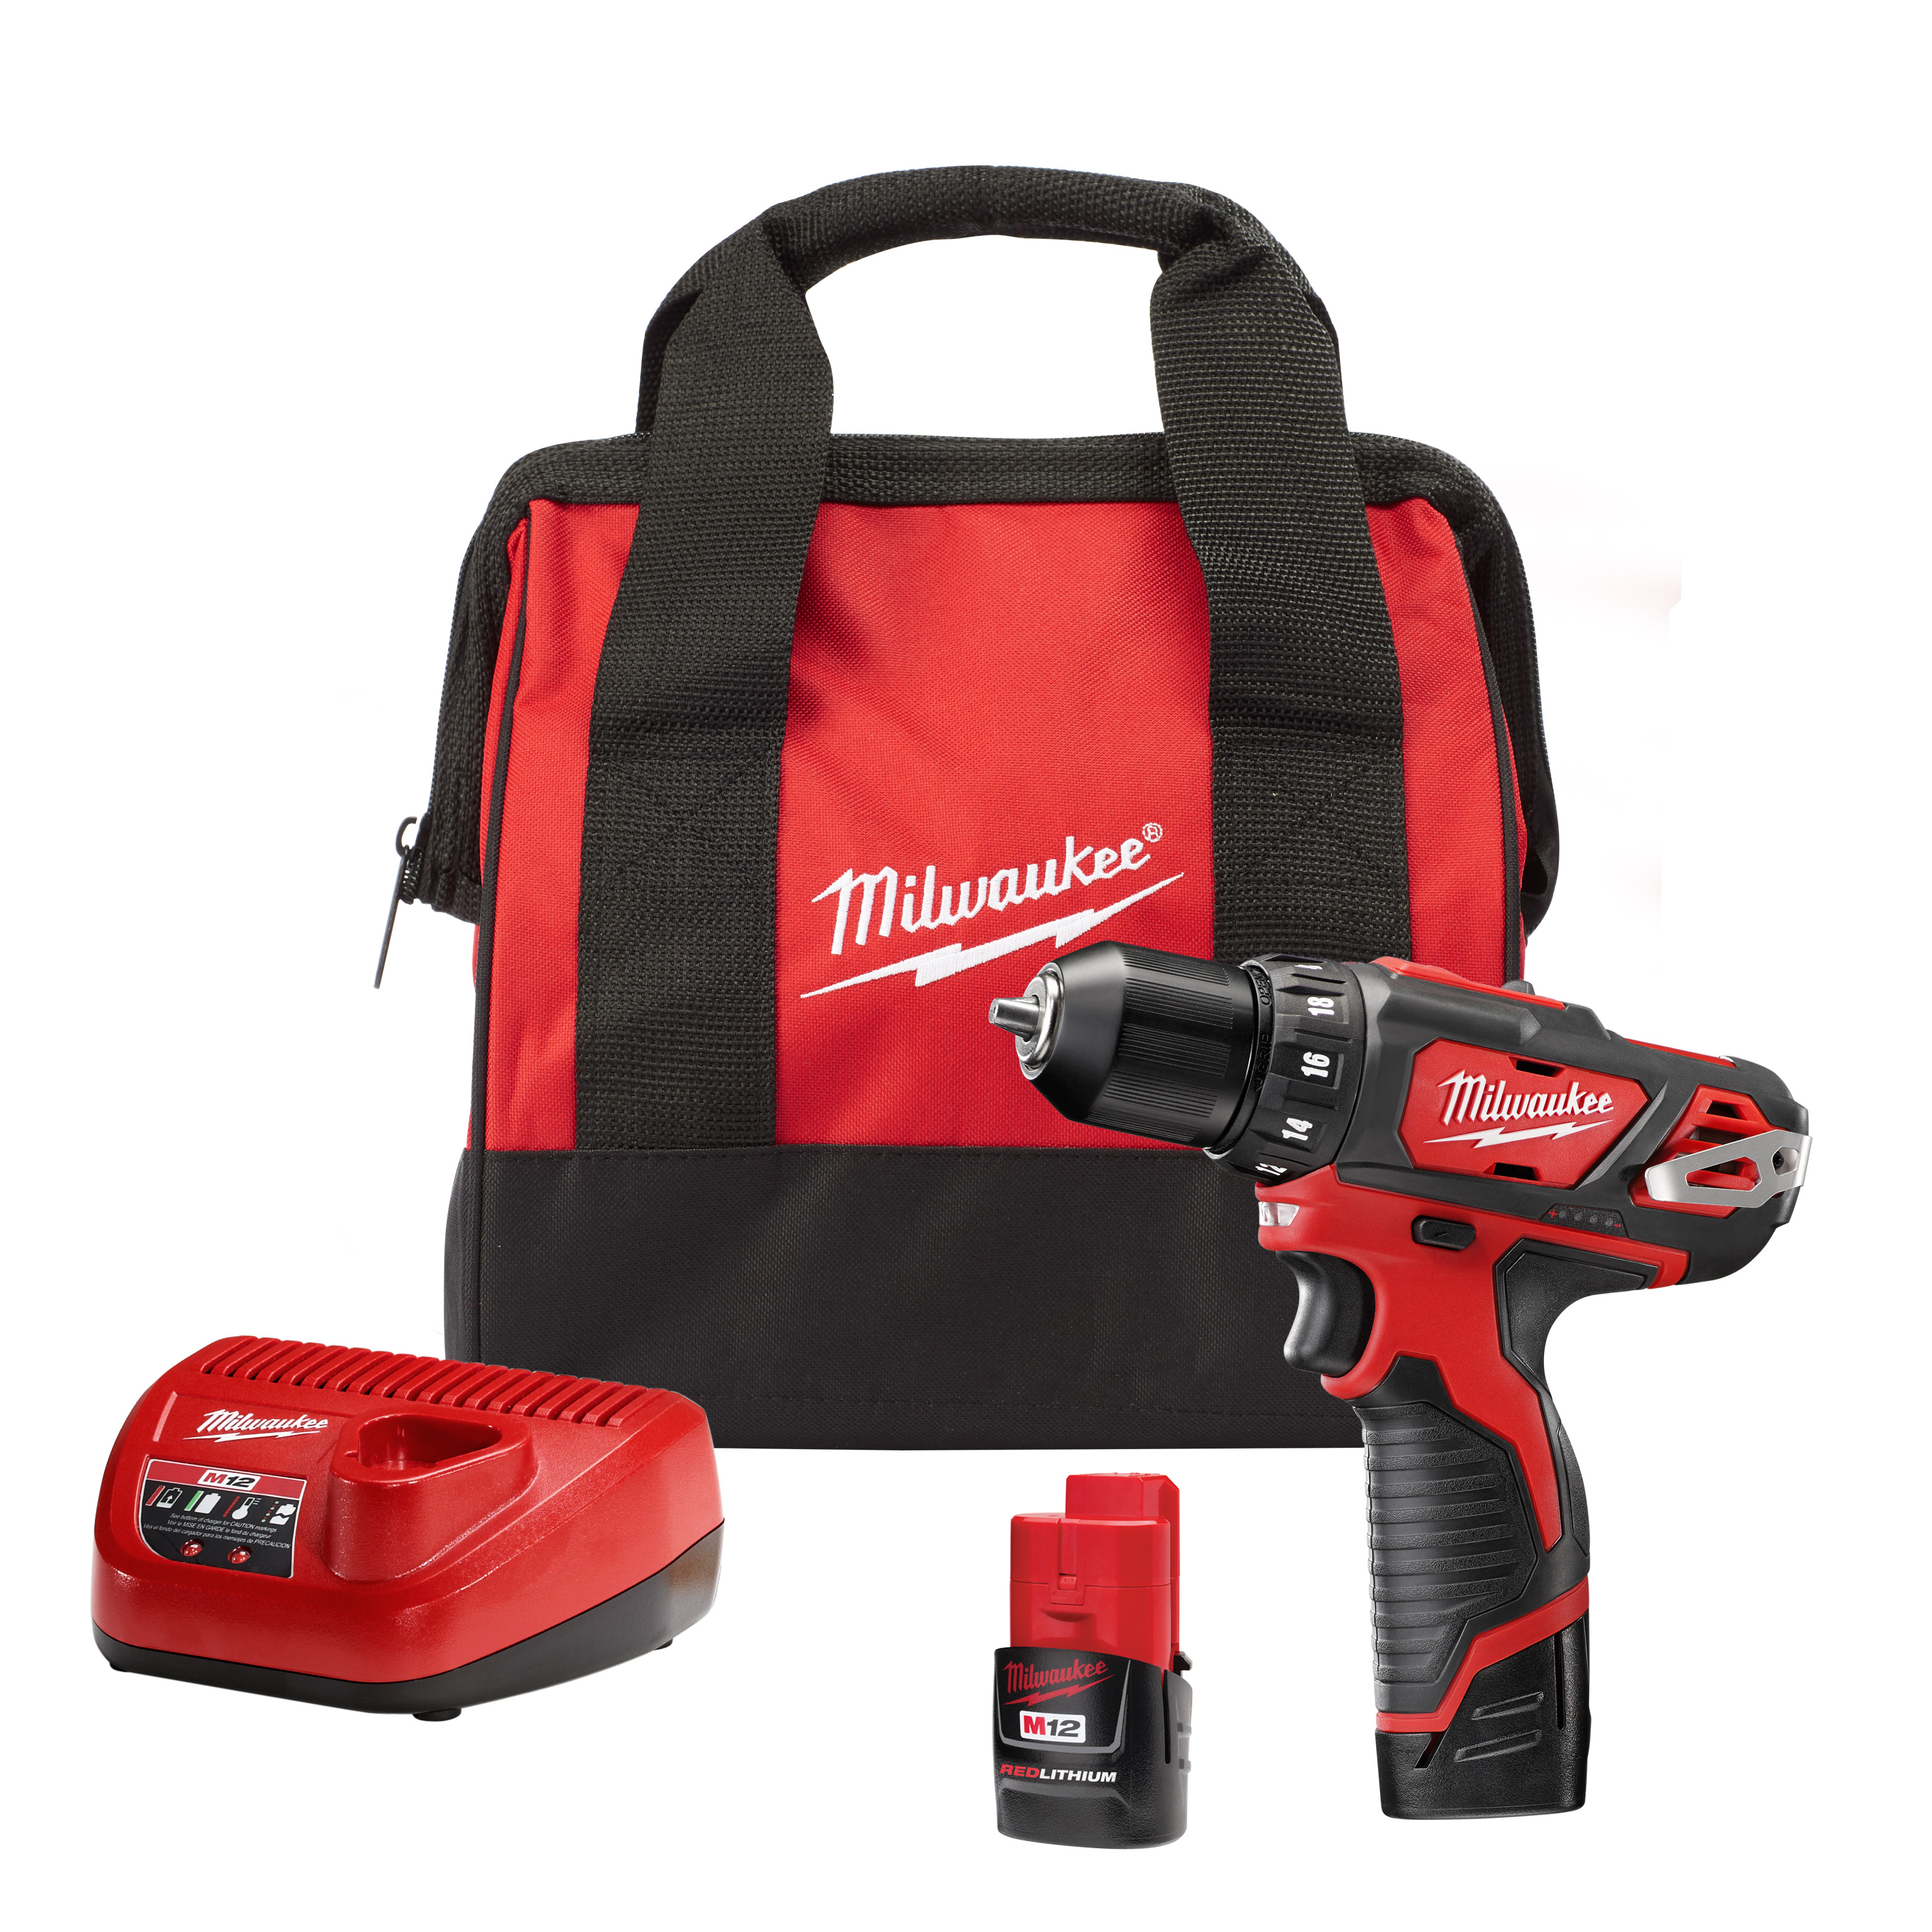 Milwaukee® M12™ 2407-22 Compact Lightweight Cordless Drill/Driver Kit, 3/8 in Chuck, 12 VDC, 0 to 400 rpm, 0 to 1500 rpm No-Load, 7-3/8 in OAL, Lithium-Ion Battery